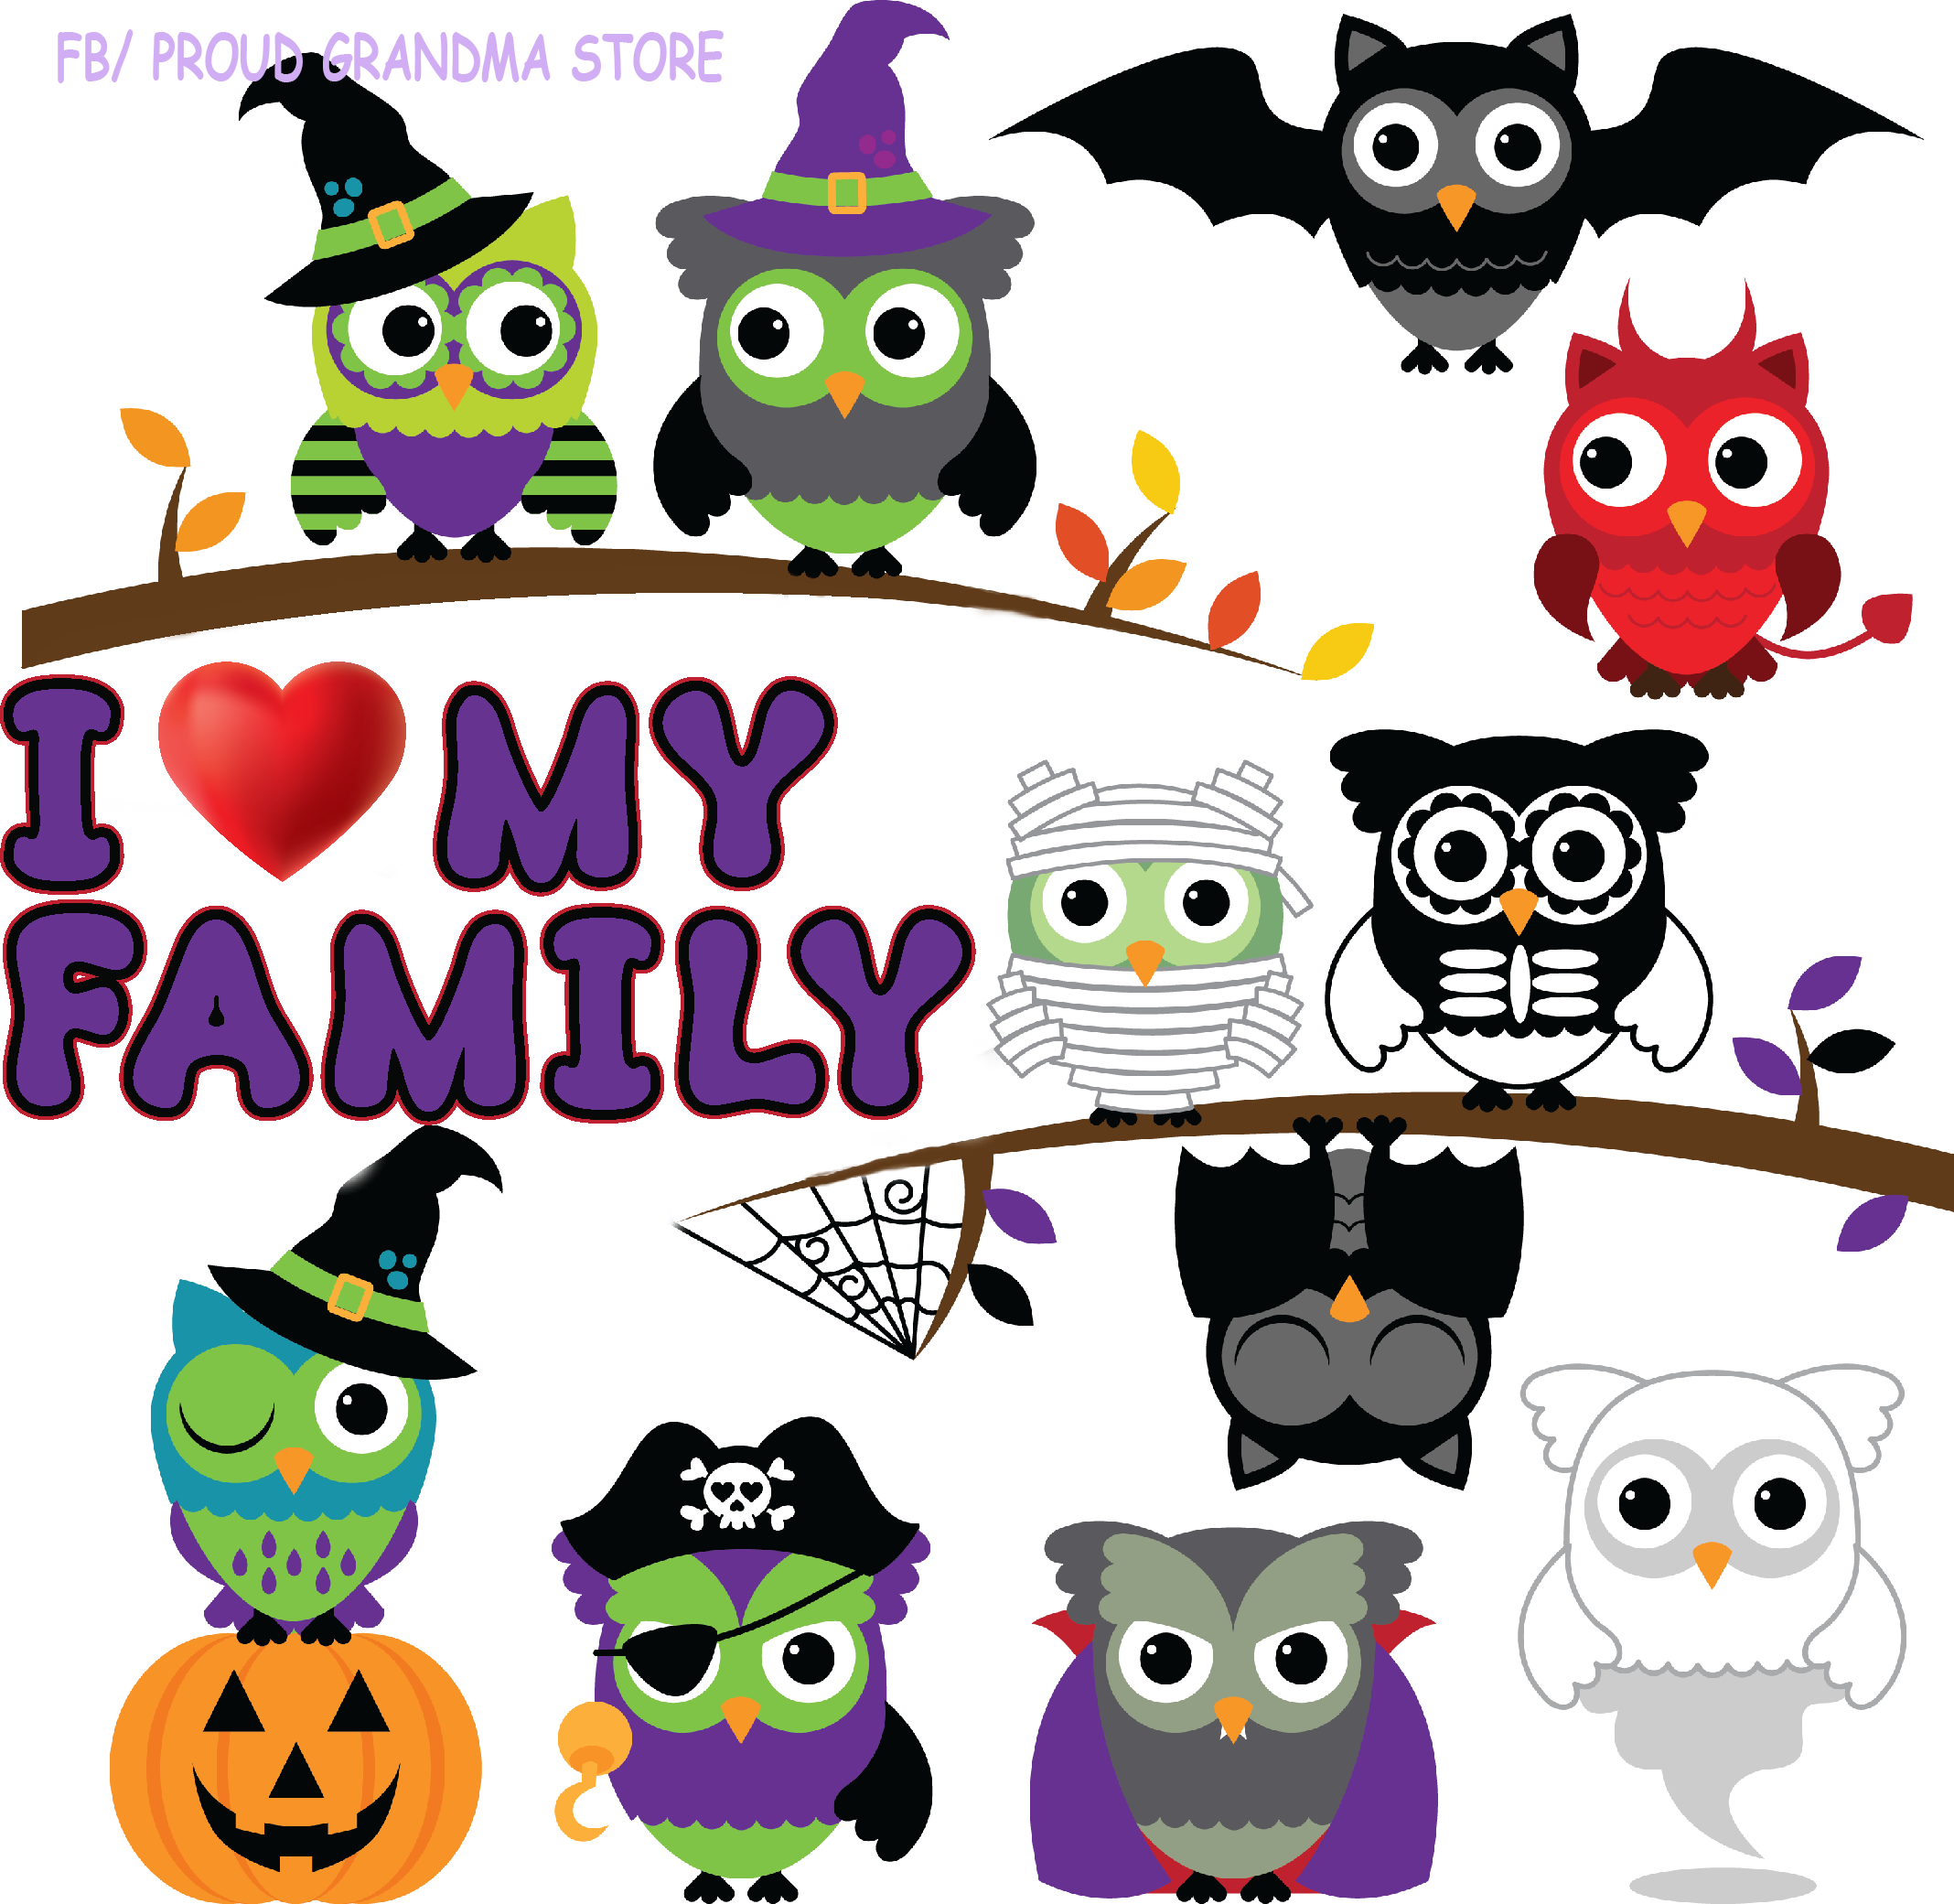 Halloween party invitation clipart banner royalty free stock Pin by Sue G on Grandma | Pinterest | Grandchildren banner royalty free stock